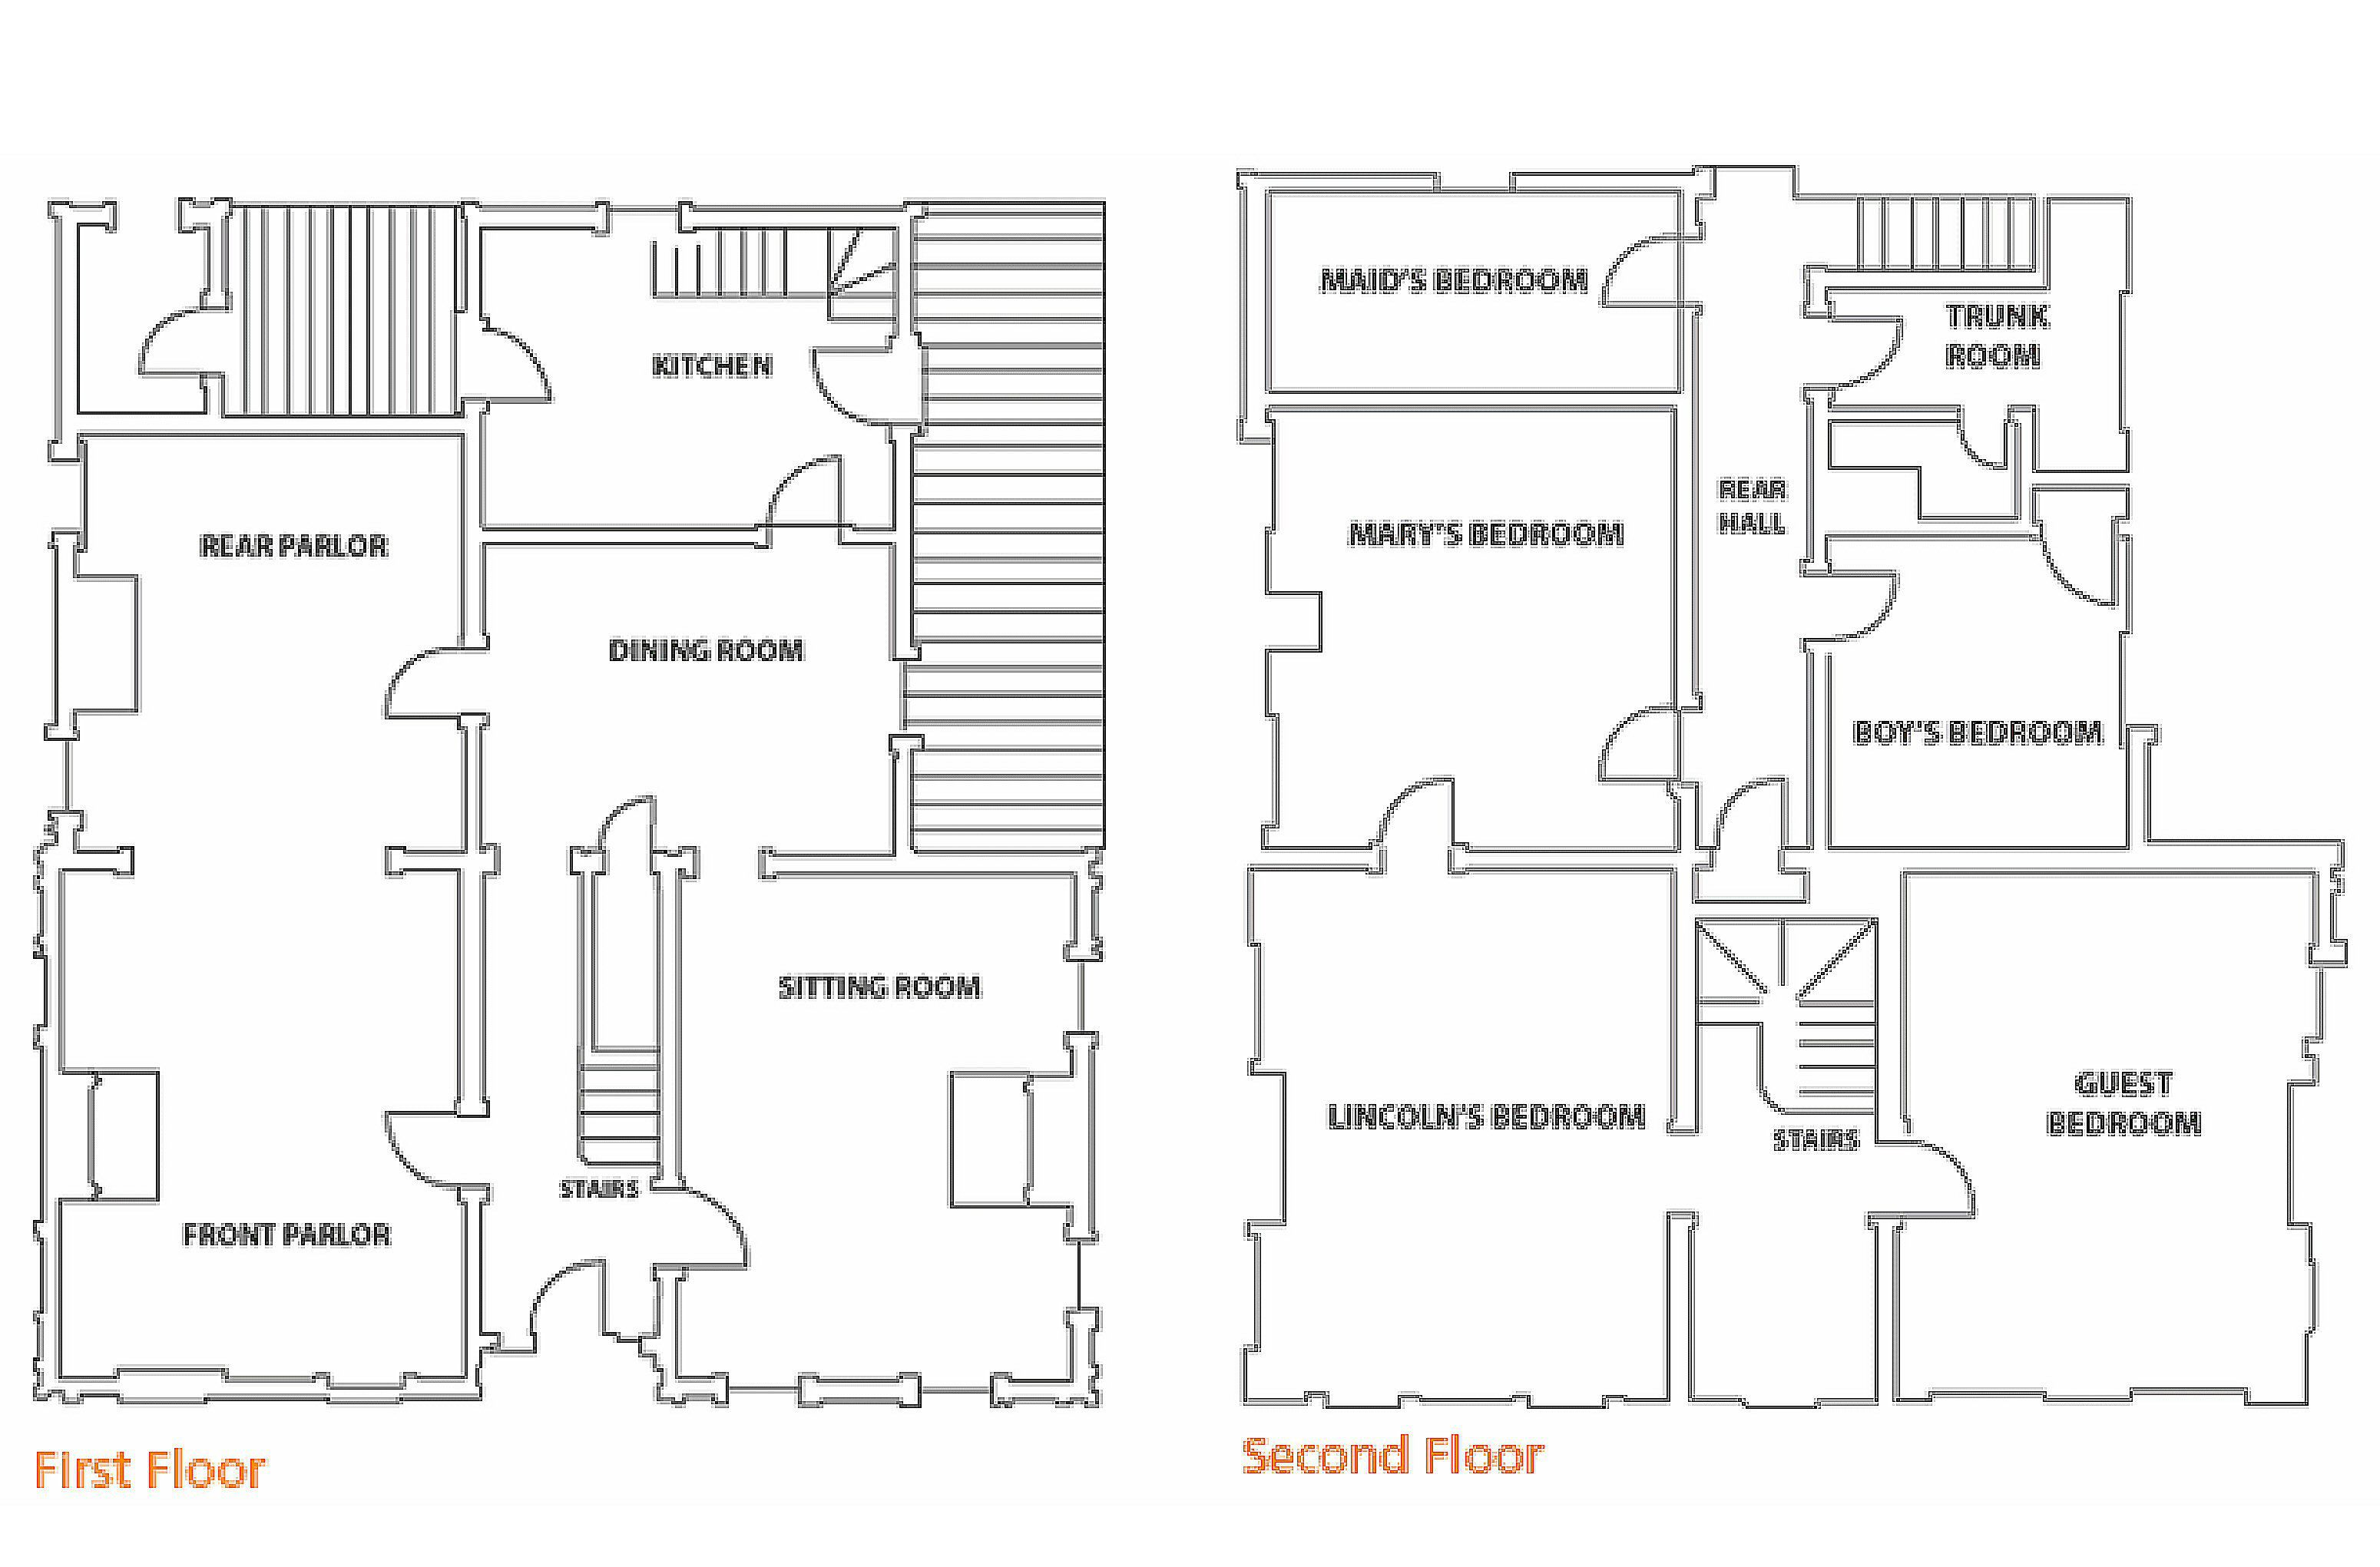 First and Second Floor Plans of Renovated Lincoln Home in Springfield, Illinois